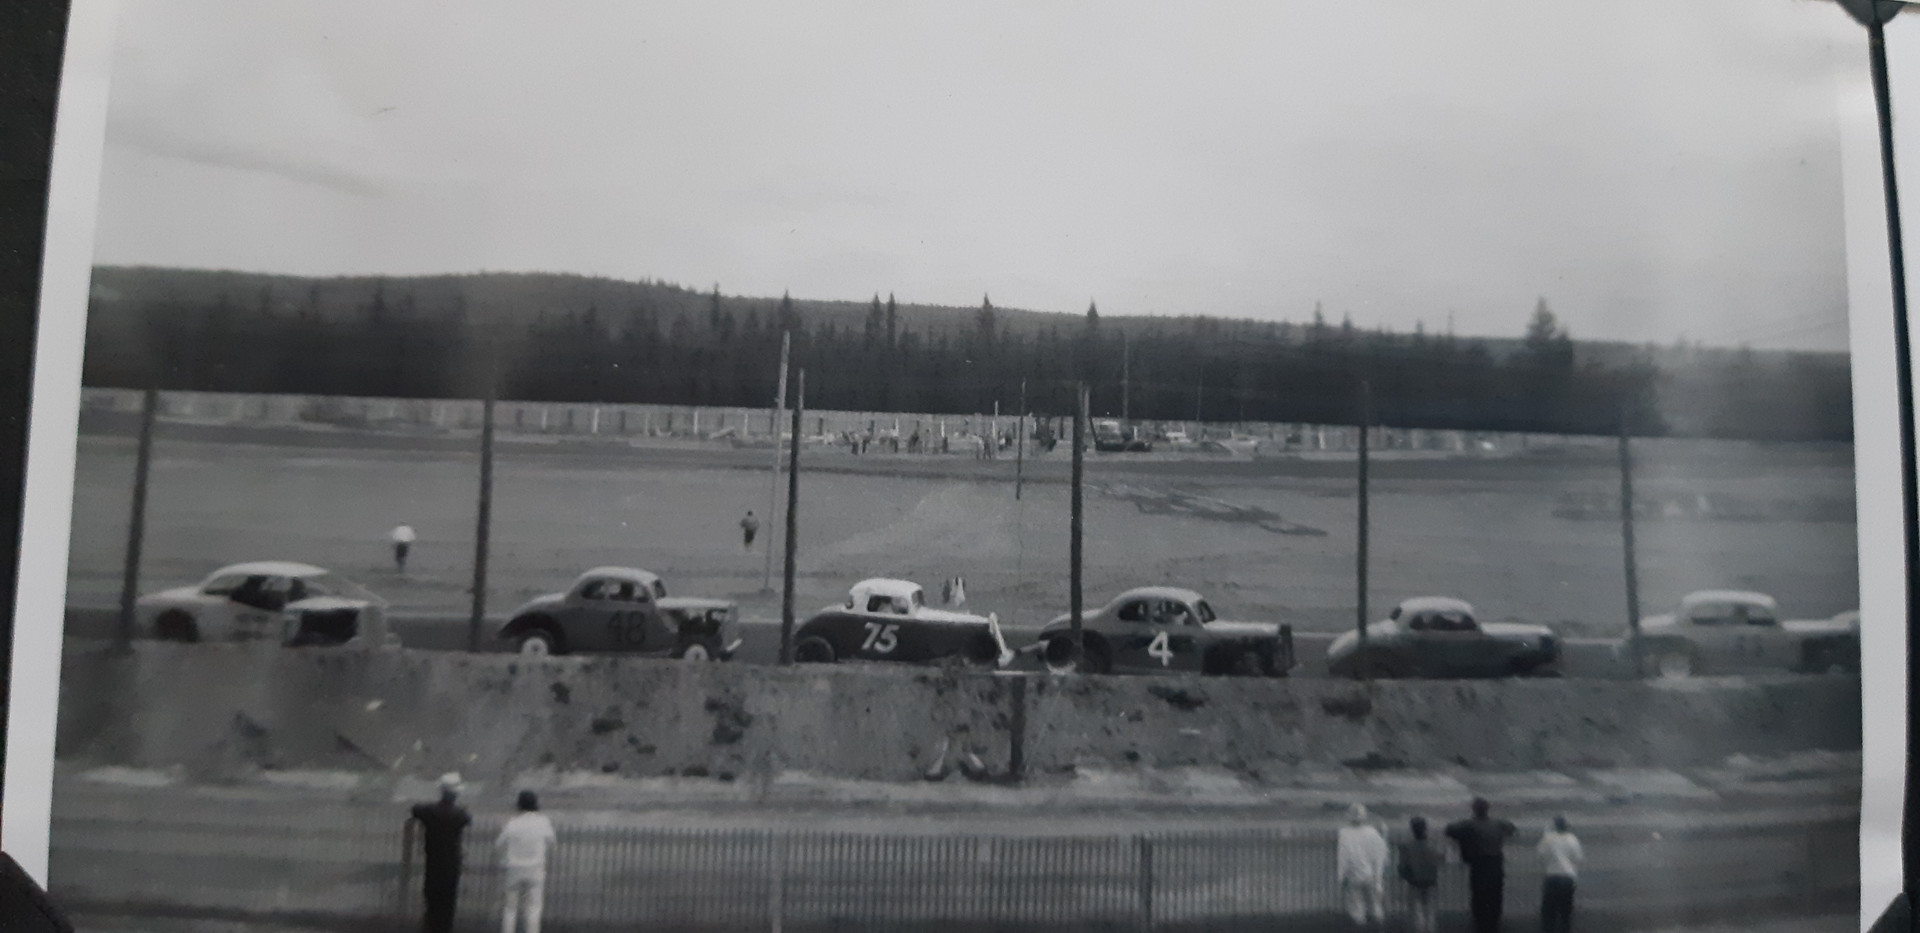 Display of cars on front strait